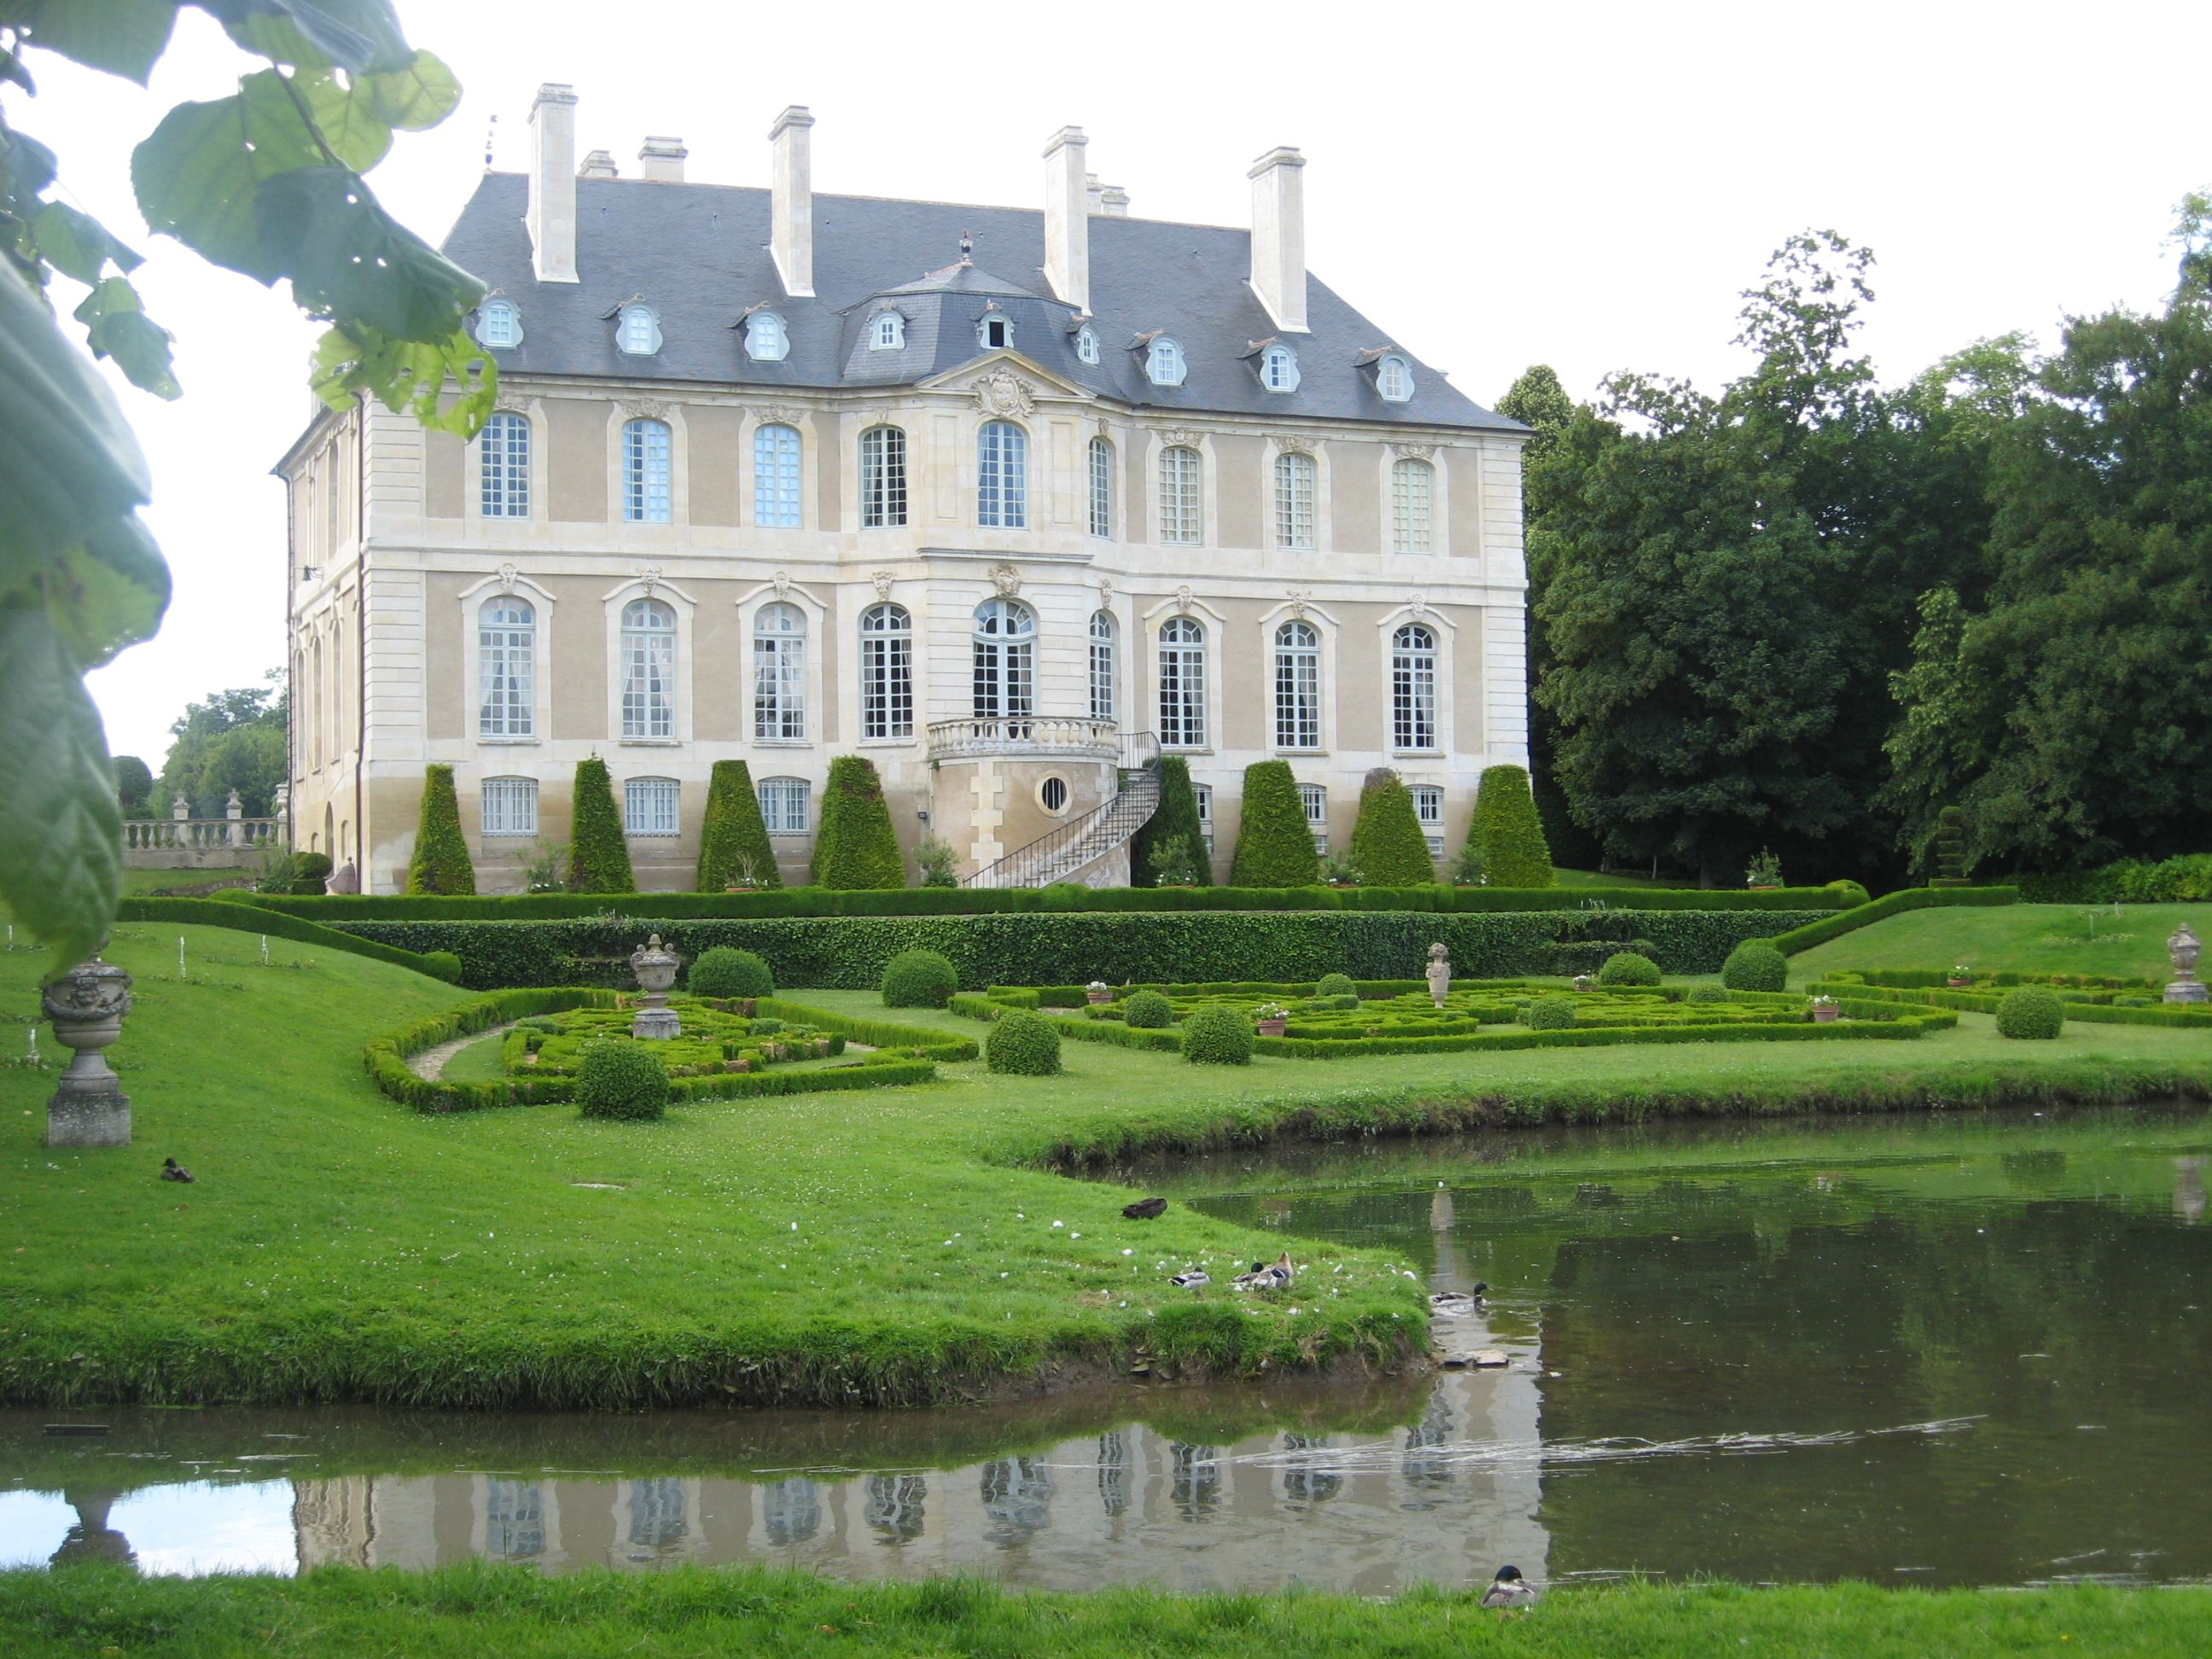 Ch teau de vendeuvre manor houses castles more for French manor house